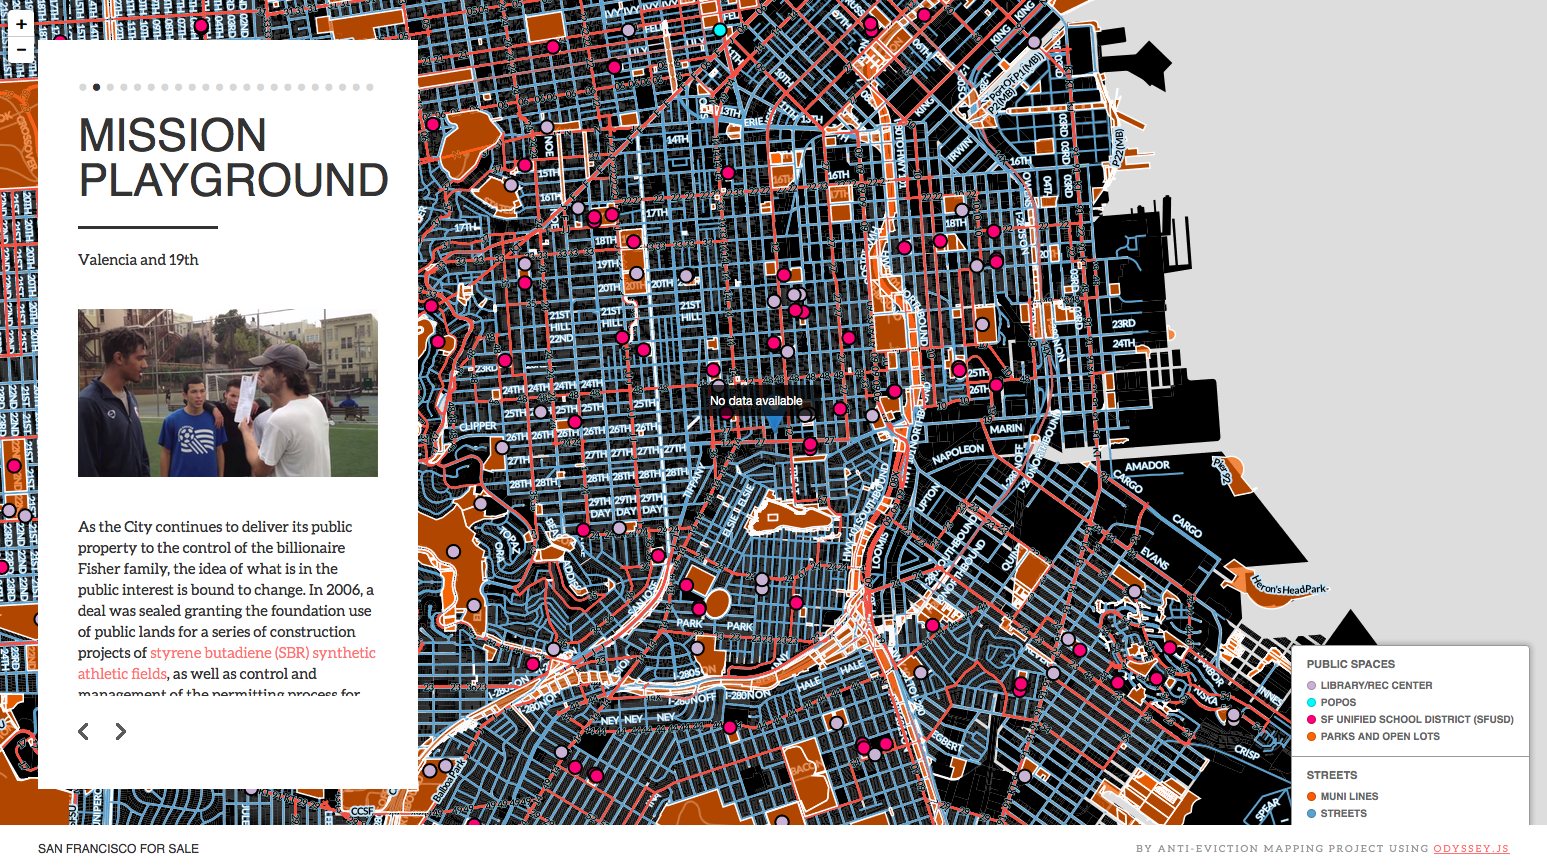 San Francisco For Sale By AntiEviction Mapping Project using